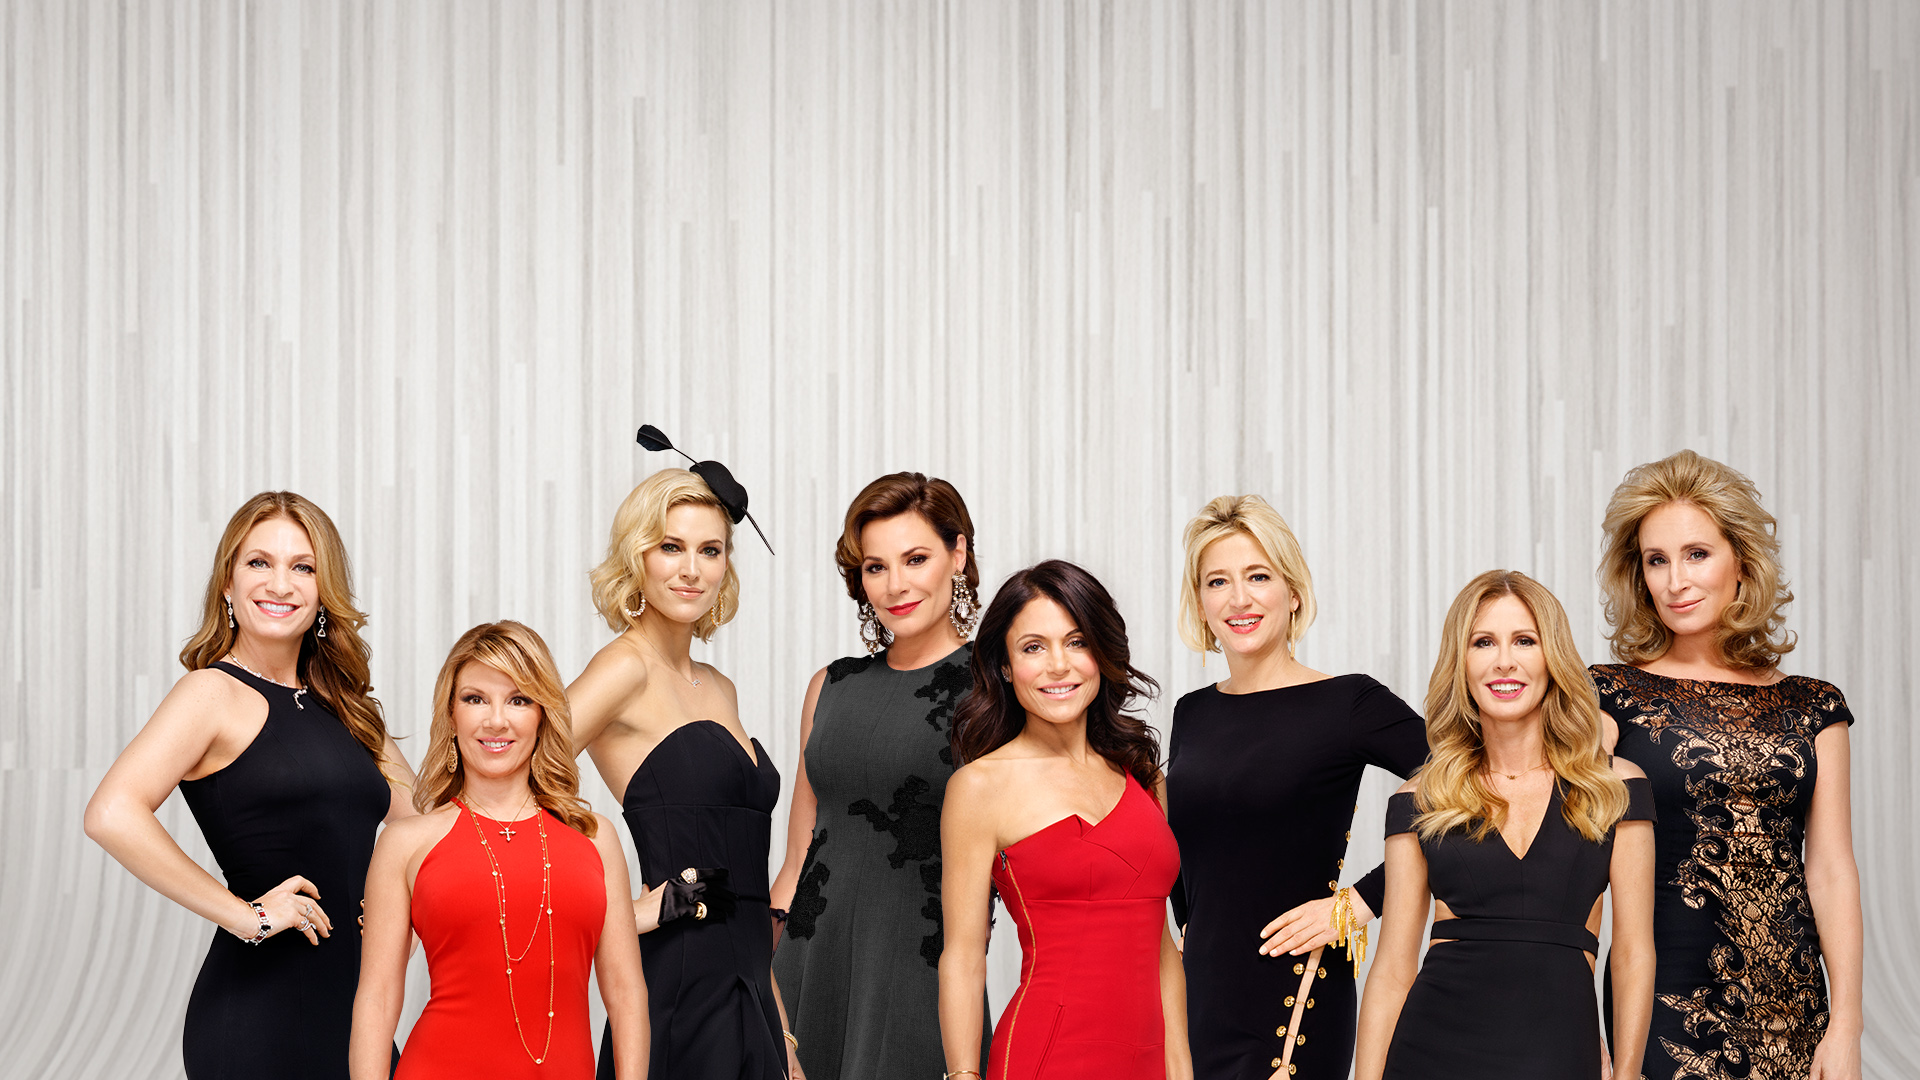 Real housewives of new york season 8 date